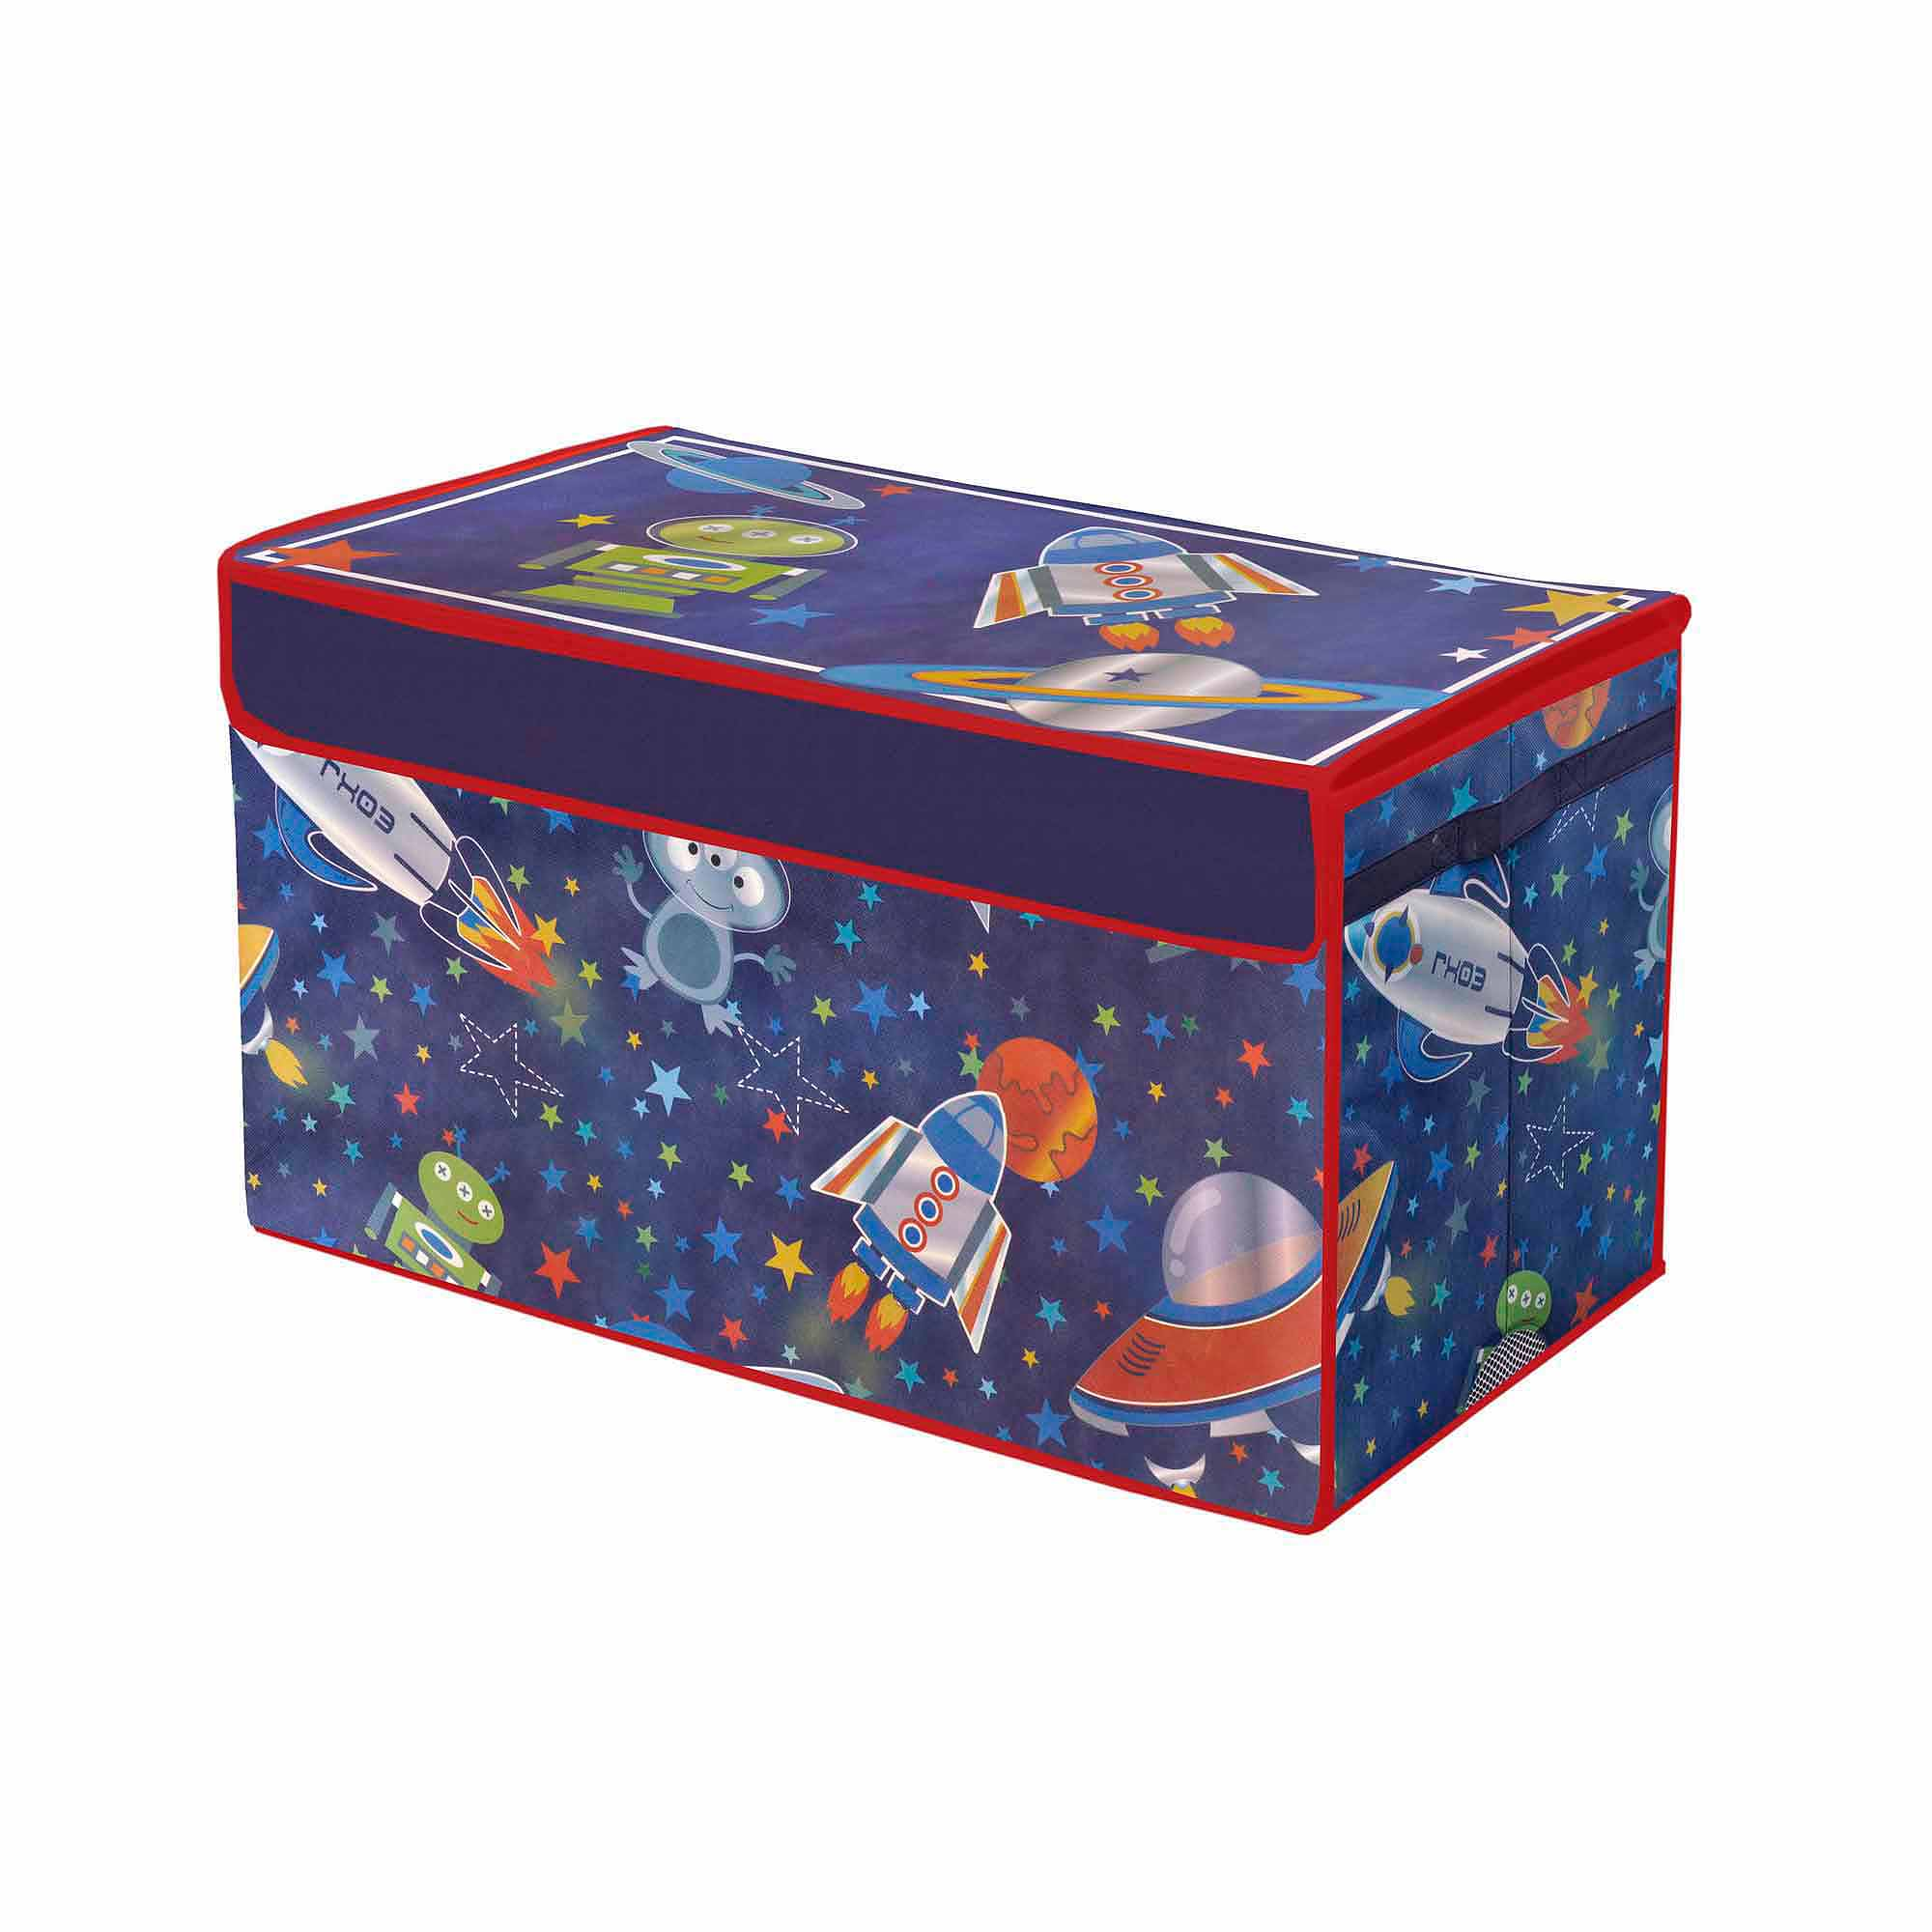 Exceptional Idea Nuova Outer Space Collapsible Storage Trunk